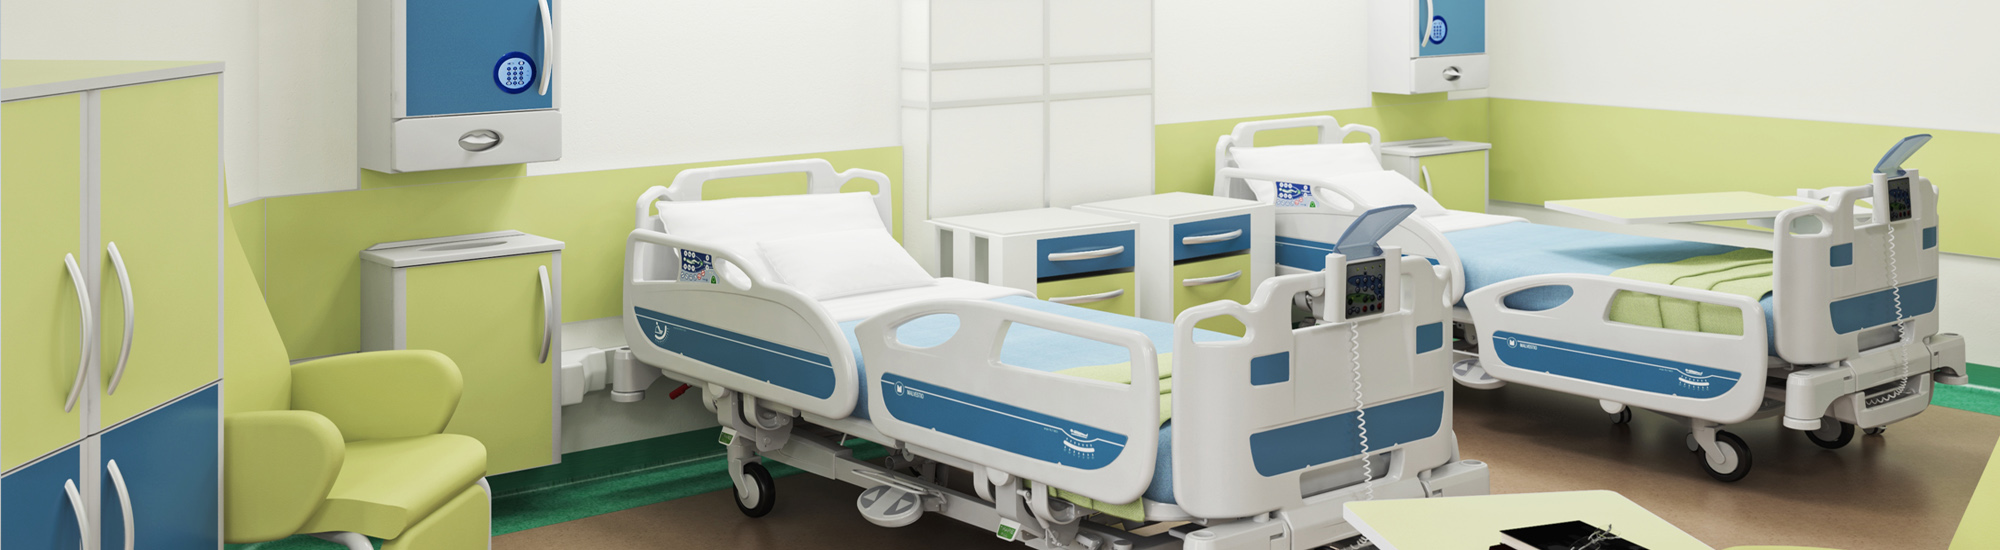 hospital equipment corporation Hemc india is engaged in exporting medical equipments, hospital equipments, orthopaedic implants & instruments, laboratory equipments, scientific & educational products worldwide.